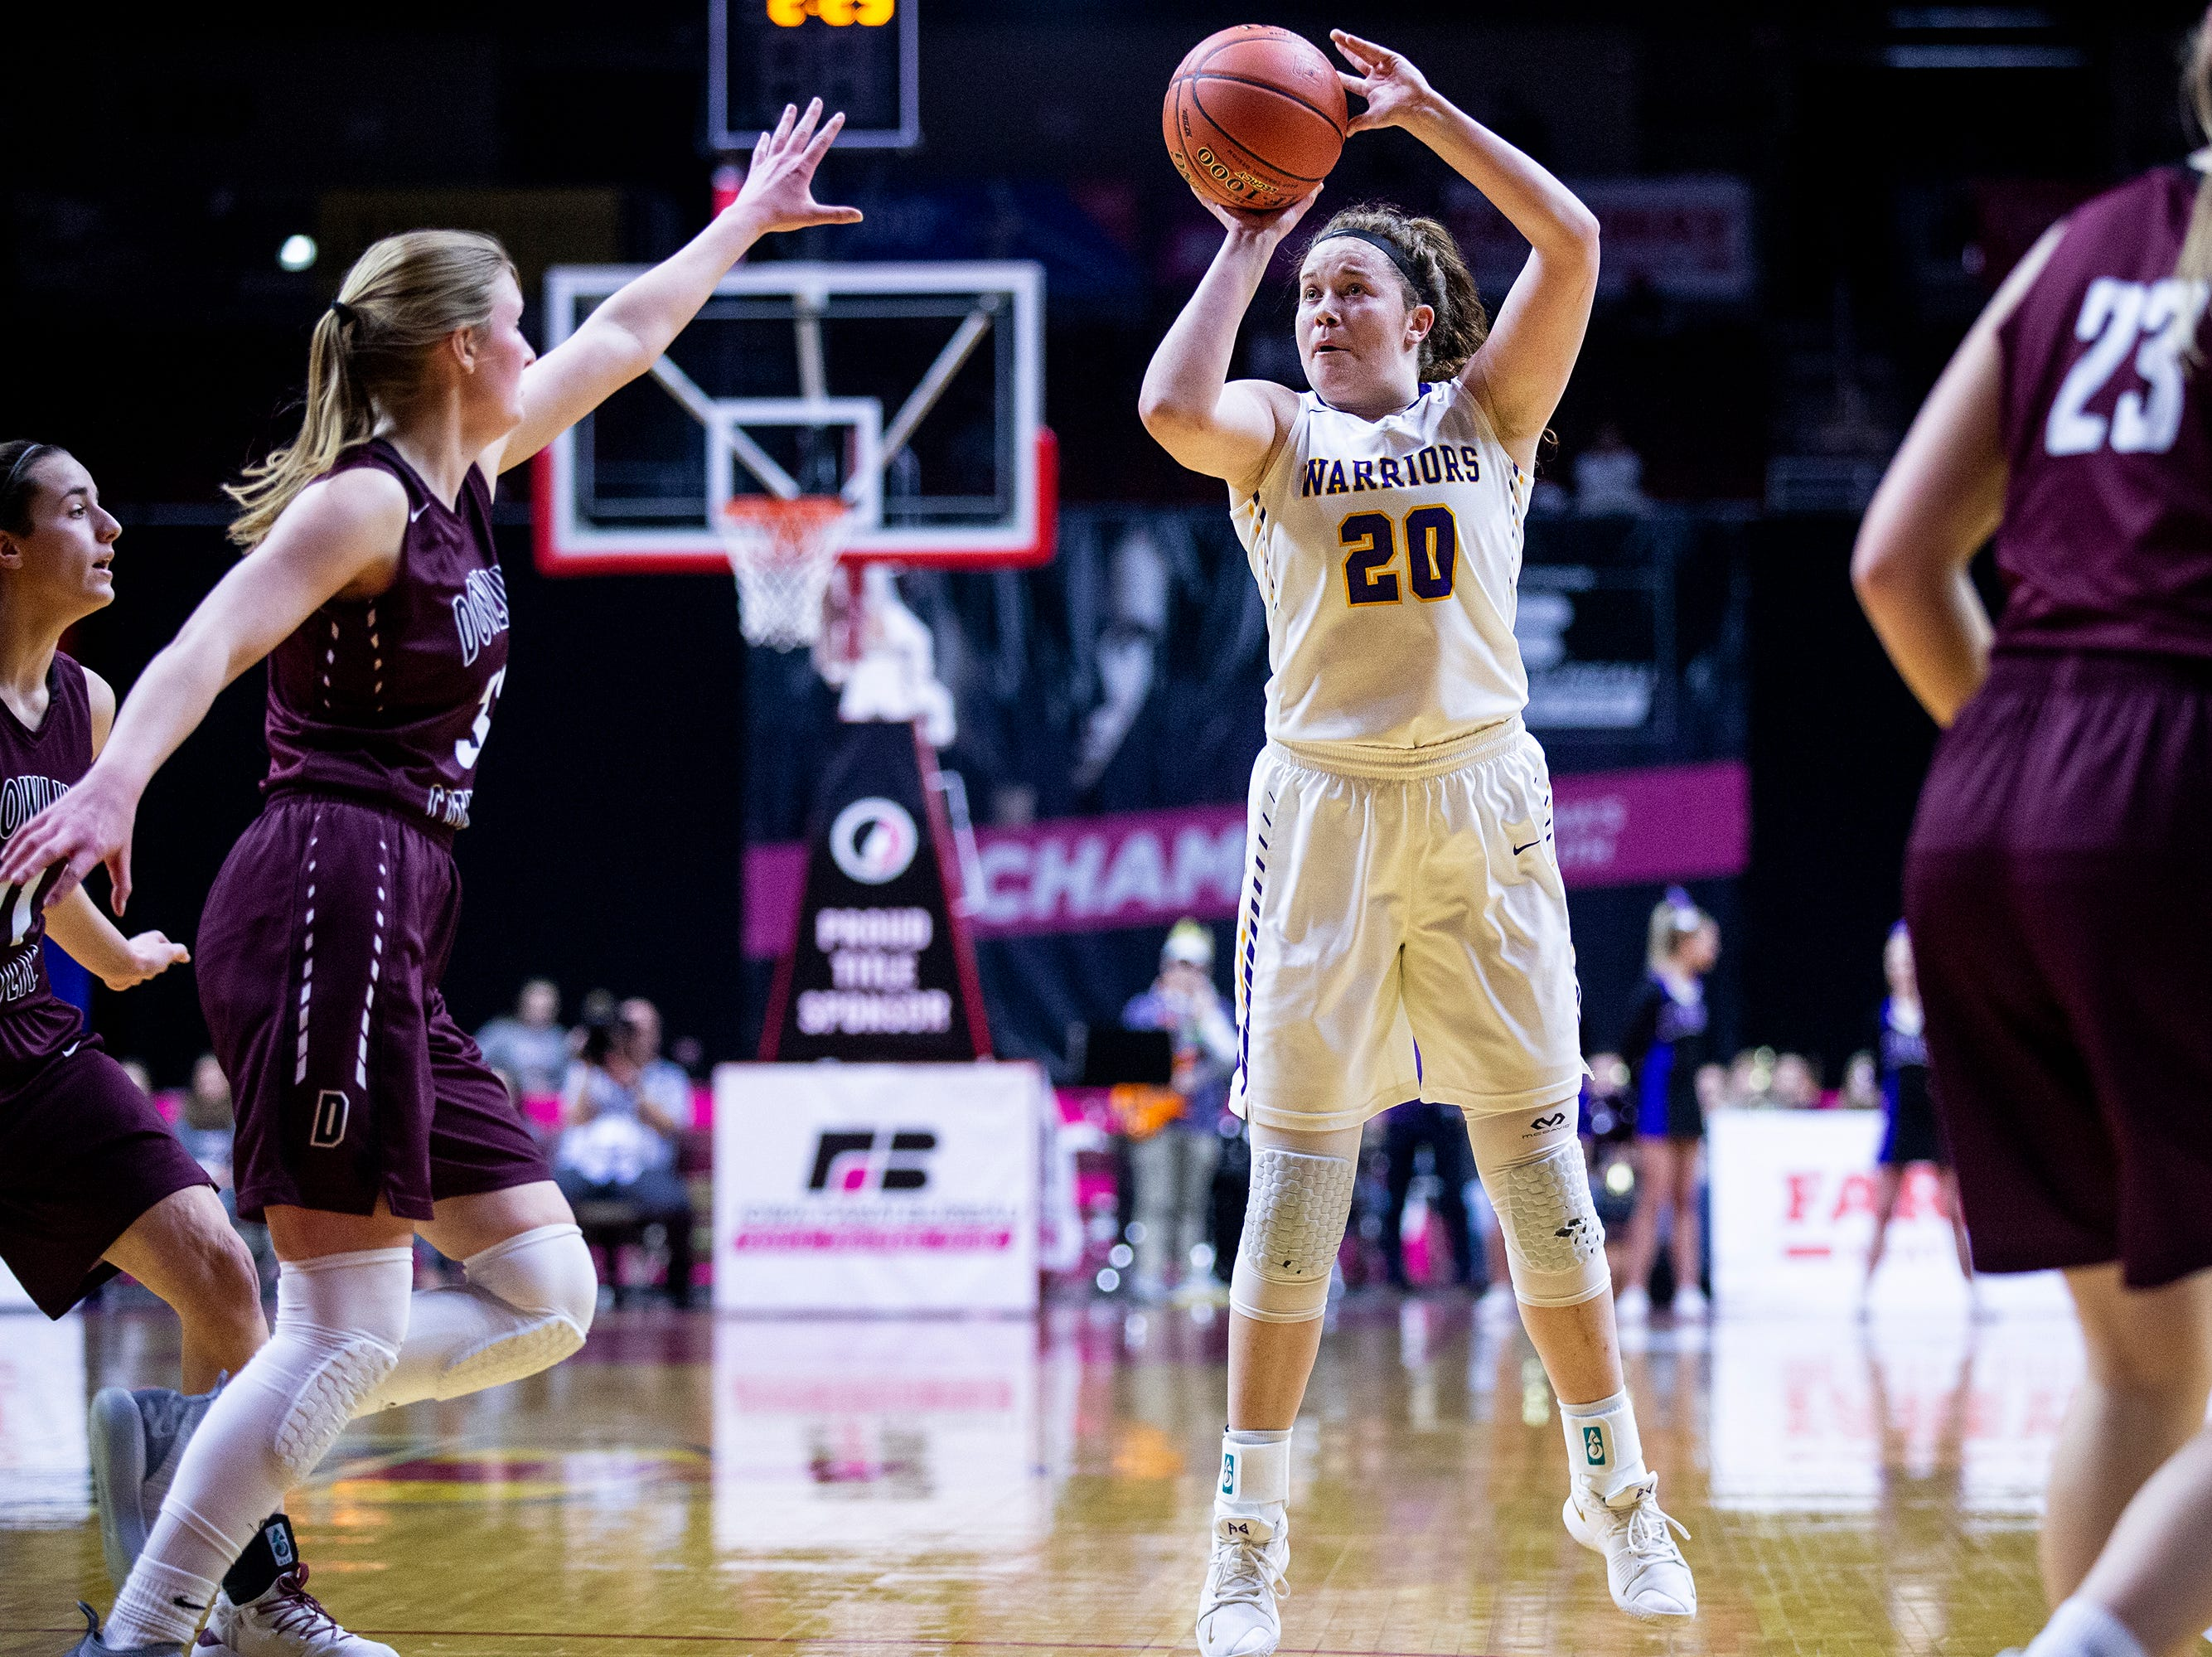 Waukee's Anna Brown shoots the ball during the Class 5A Iowa girls' state basketball tournament quarterfinal between Dowling Catholic and Waukee on Monday, Feb. 25, 2019, in Wells Fargo Arena.